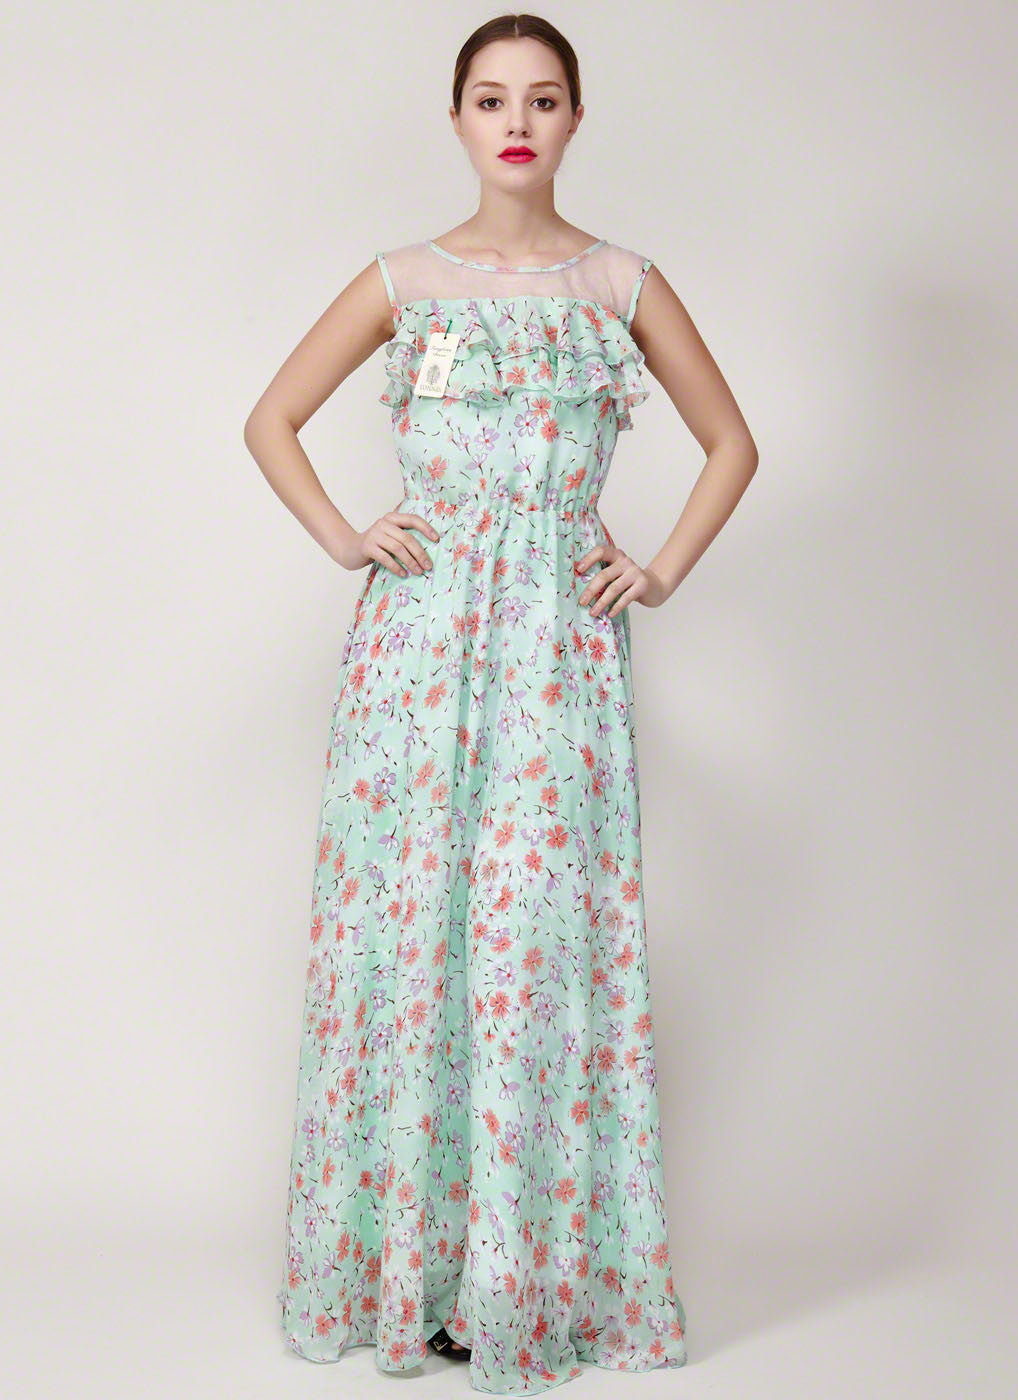 a62bb49adc77 Floral Printed Chiffon Maxi Dress with Sheer Organza and Flounce Details-  Aquamarine Floral Sun Dress